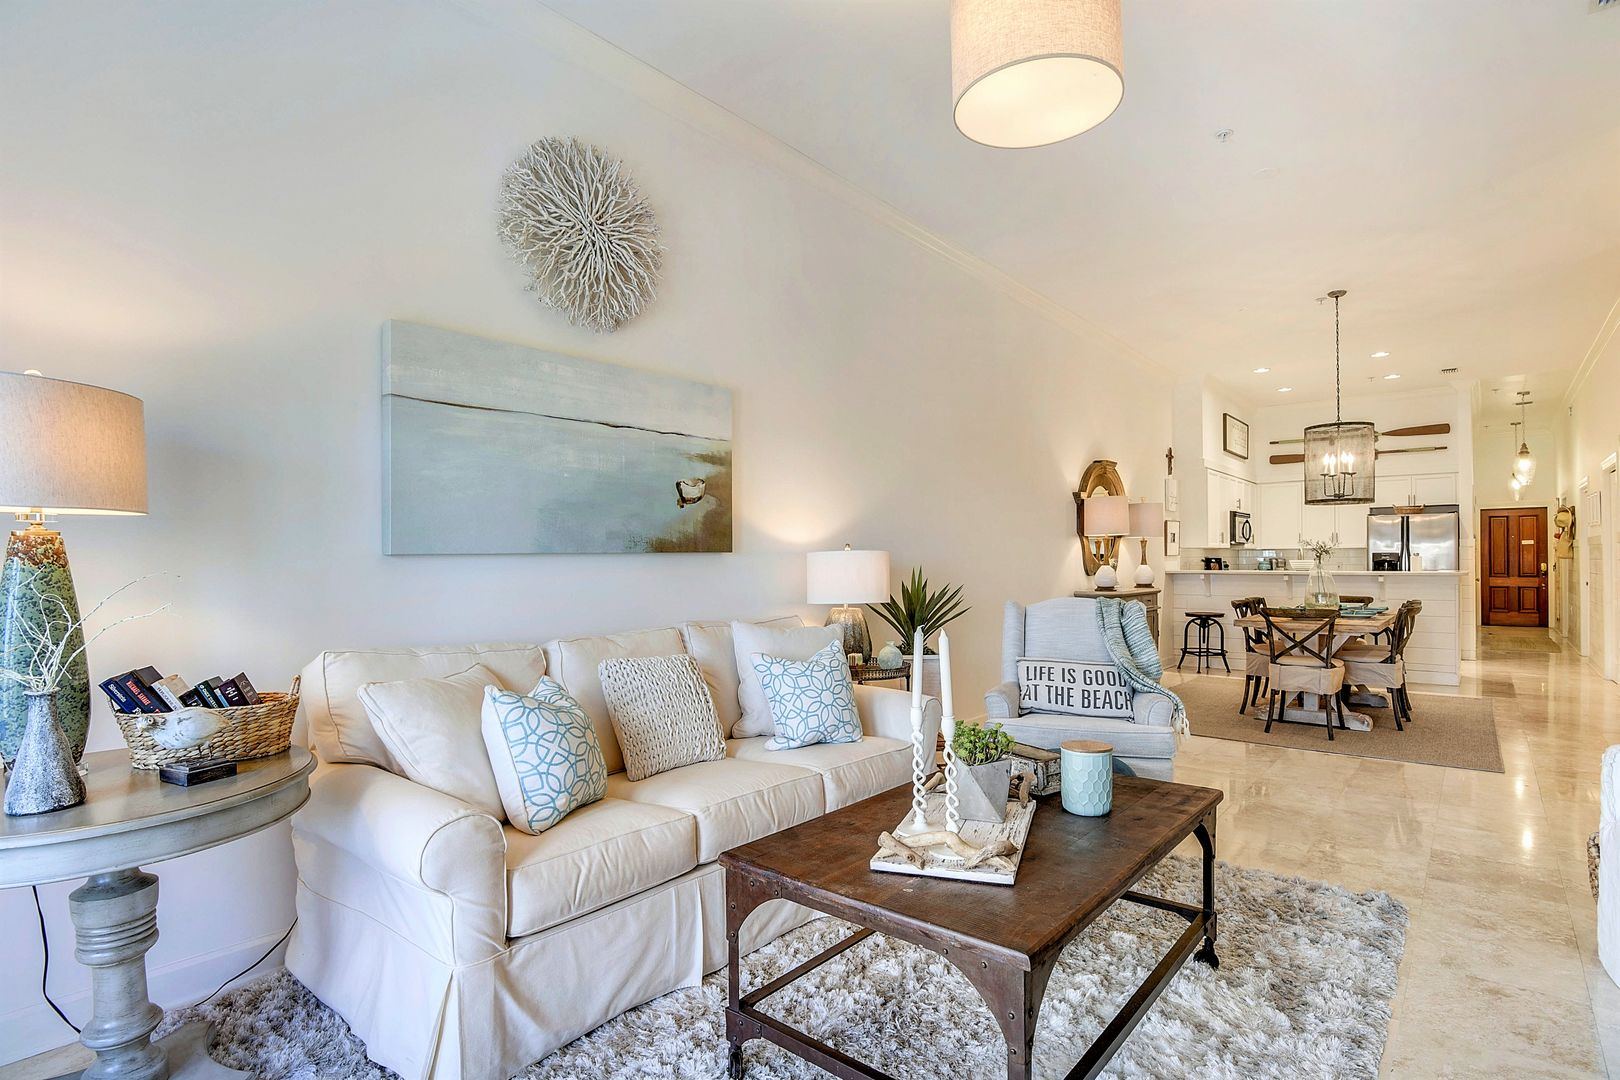 Forever Vacation Rentals living room in the Emerald Coast, Florida